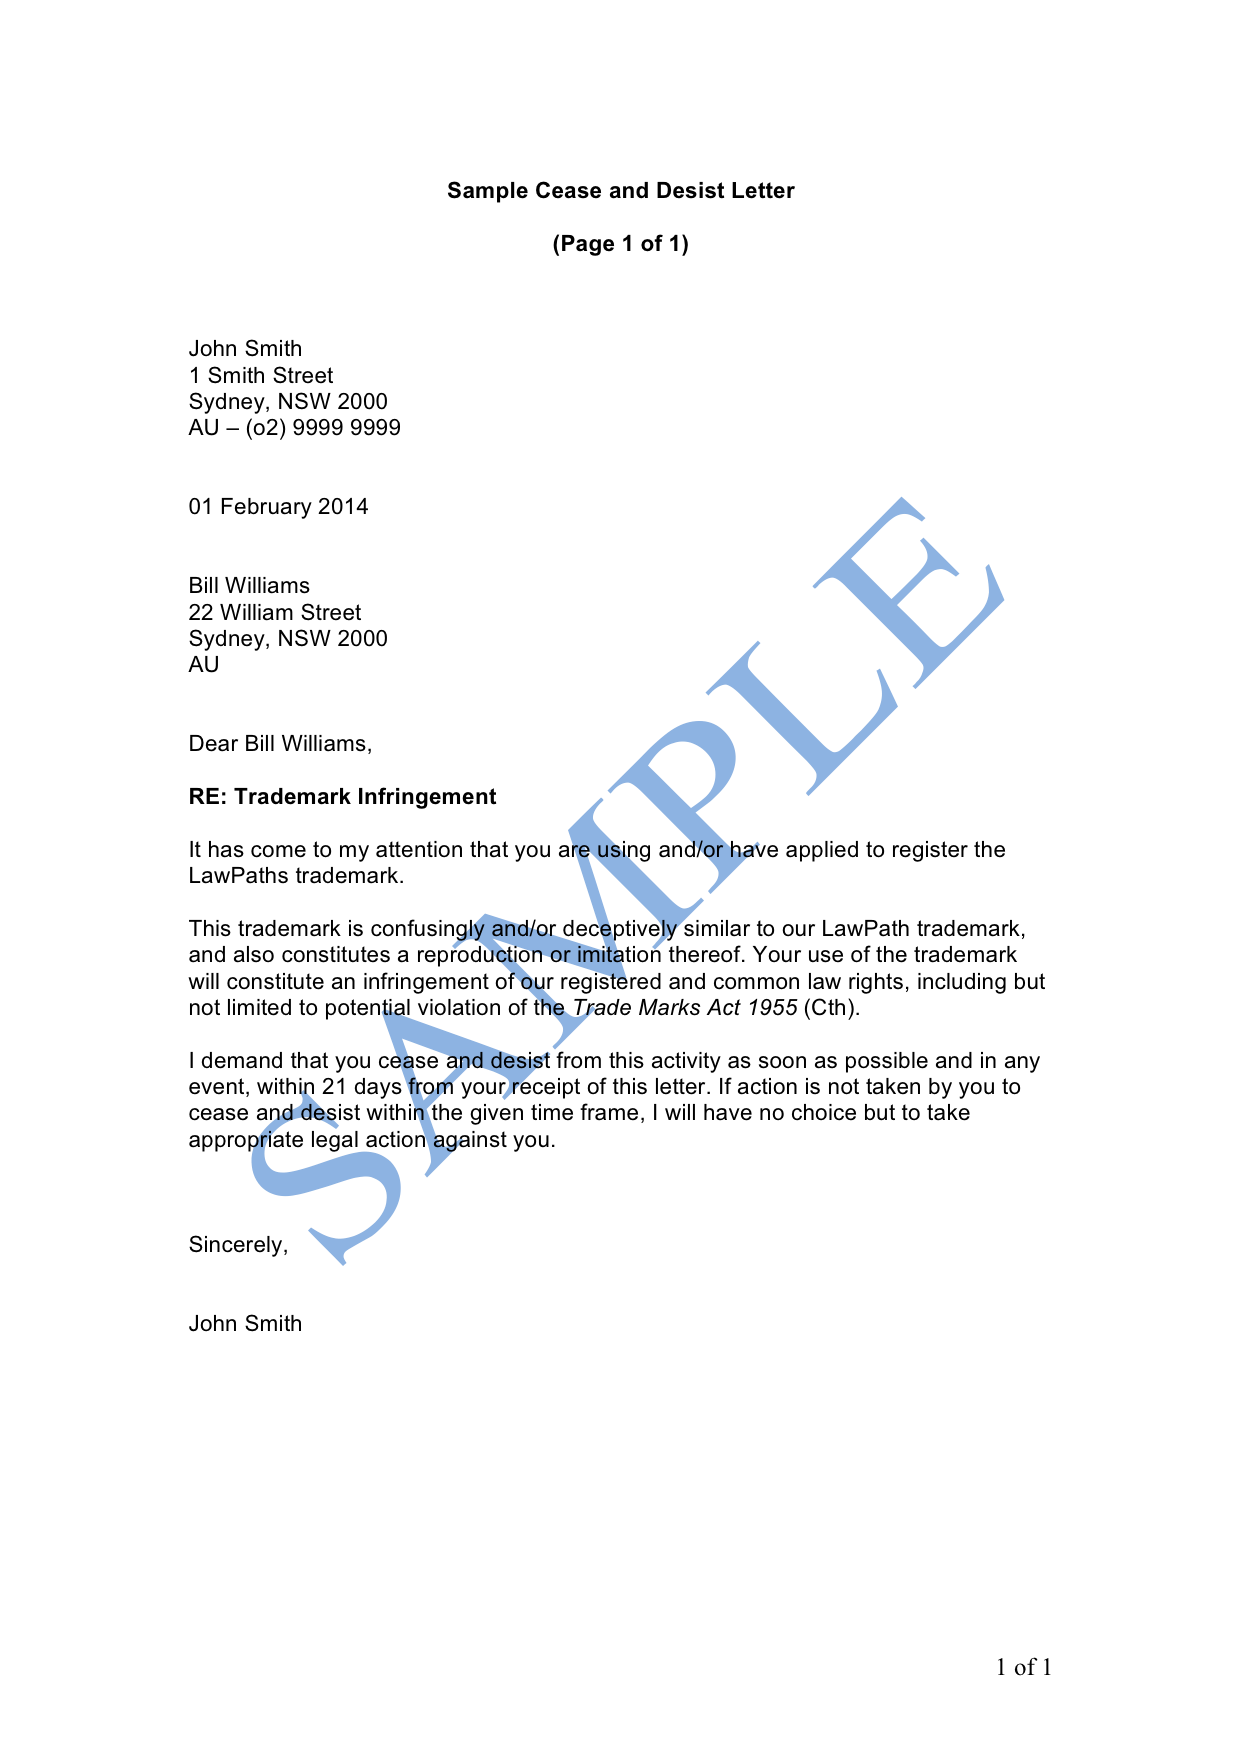 cease and desist letter sample - lawpath